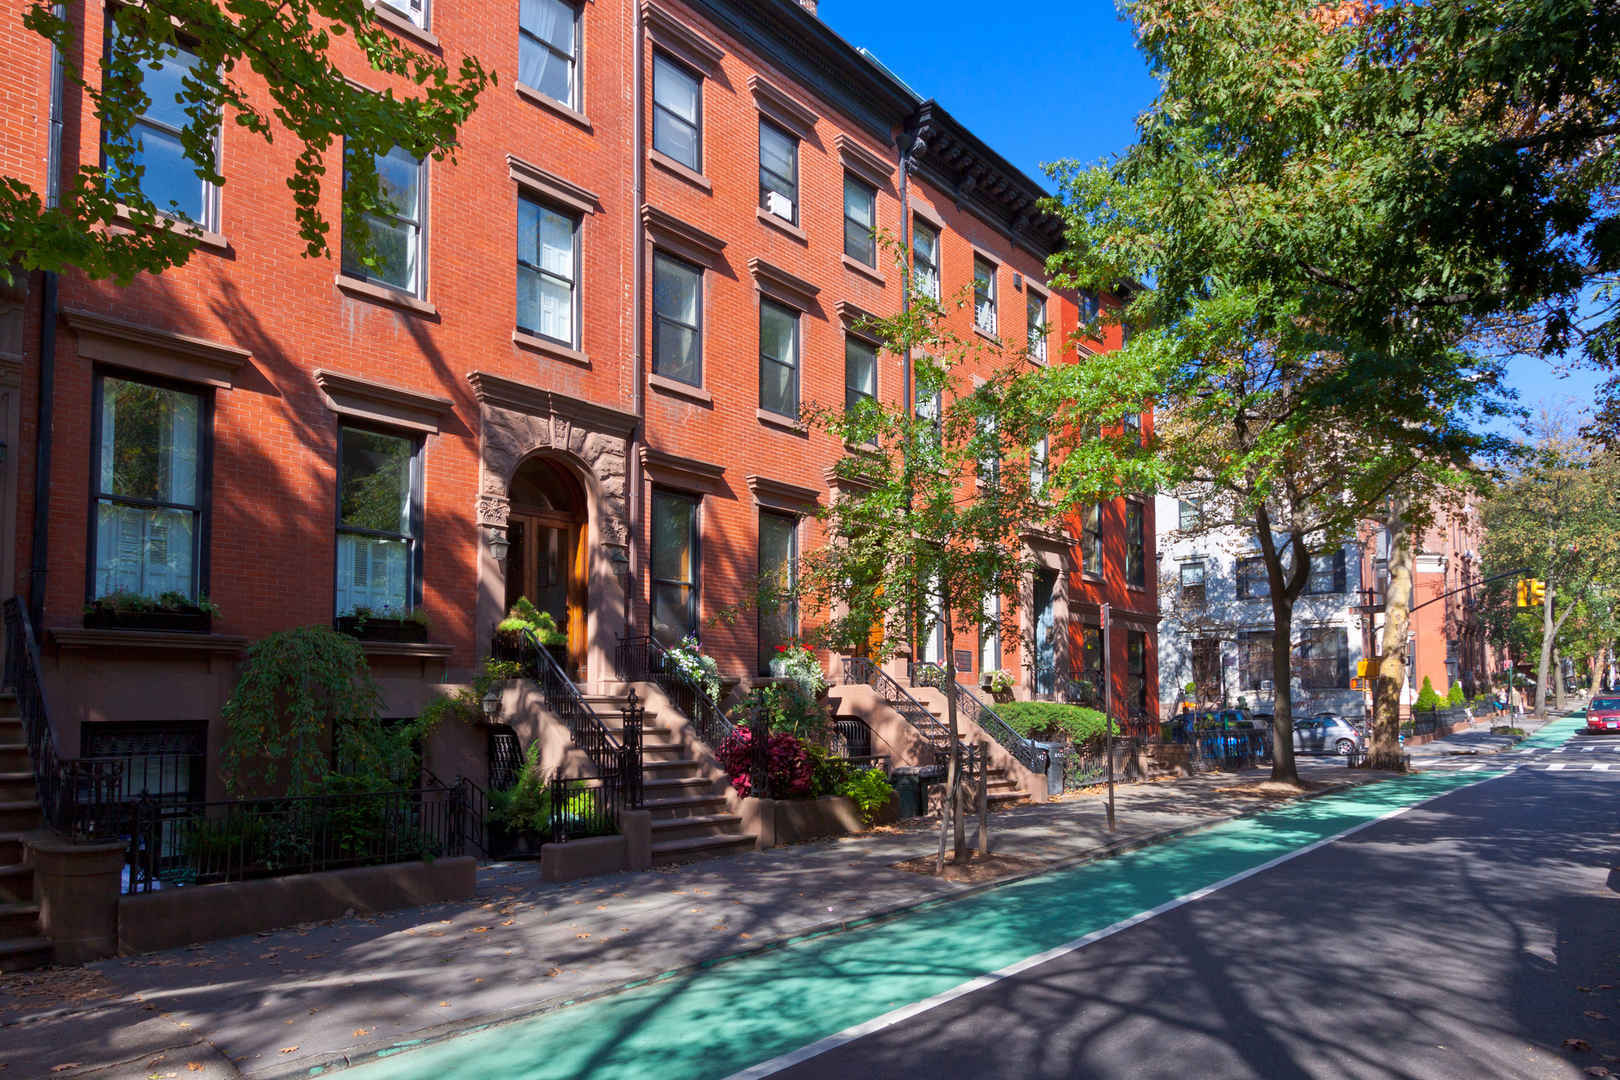 Residential townhouses in Brooklyn Heights, NYC